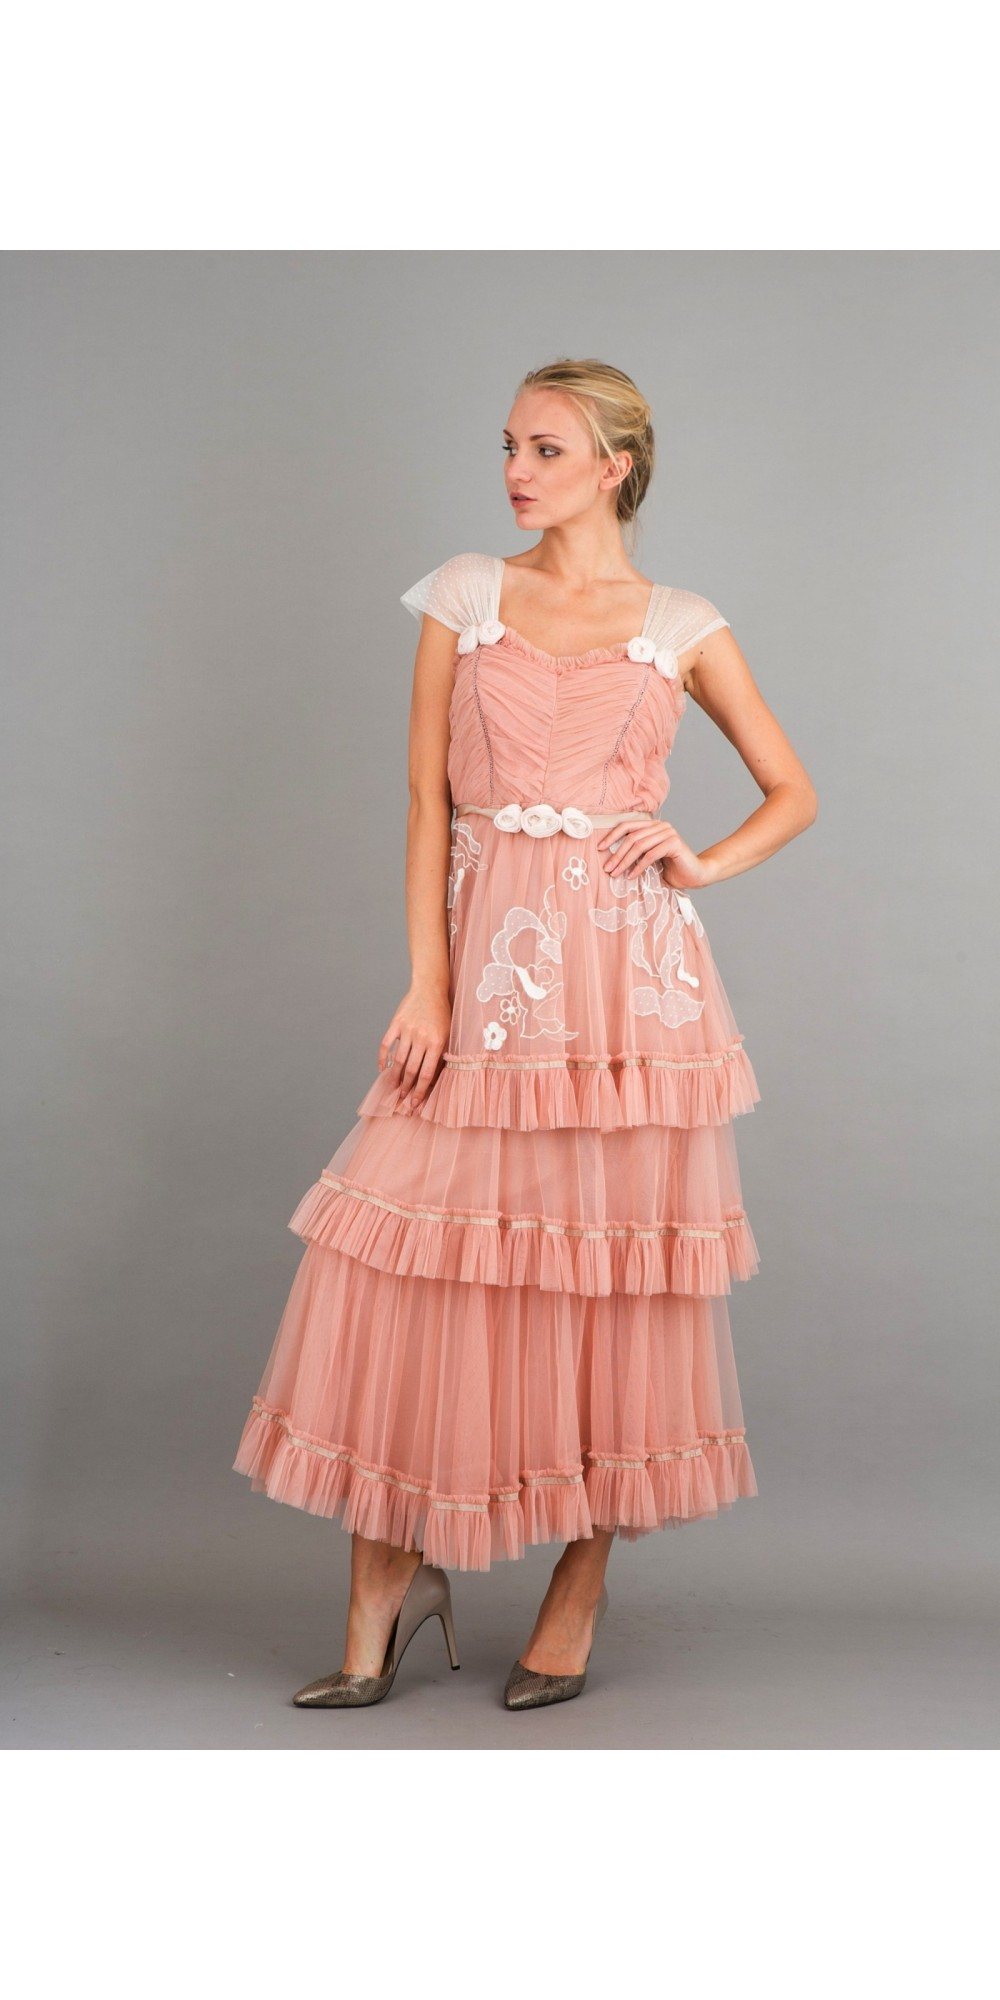 romantic frilled vintage inspired tea party dress in pink